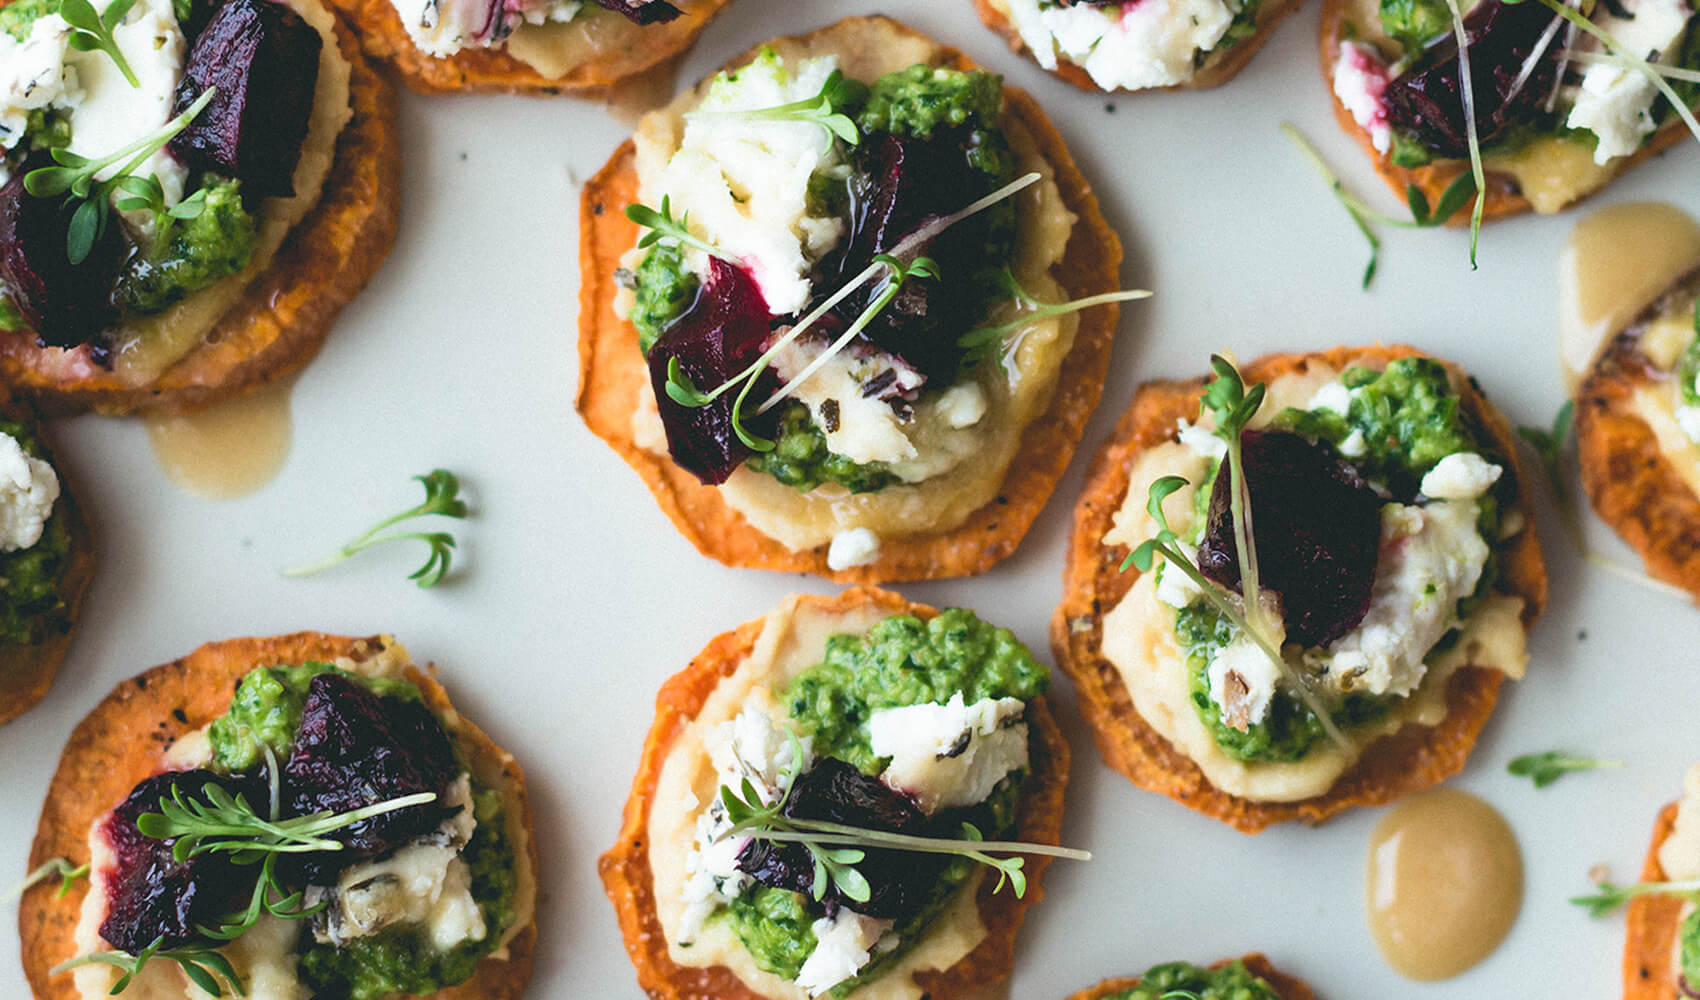 Sweet Potato Rounds with Hummus, Pesto, and Goat Cheese